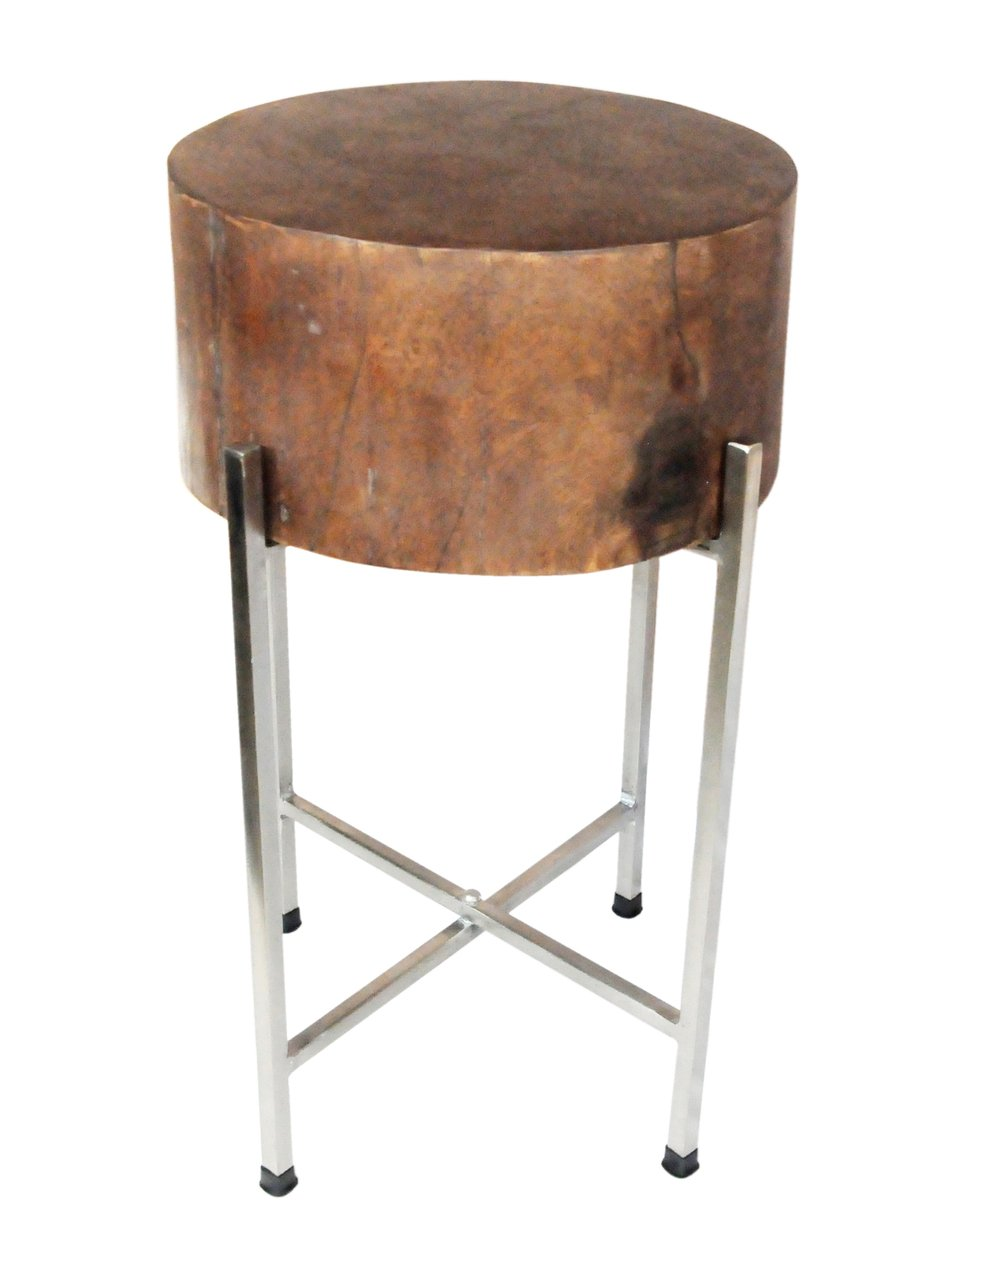 Natural Wood Block Accent Table Stella with 6 Deep Solid Mango Wood Block and Collapsible Silvered Base